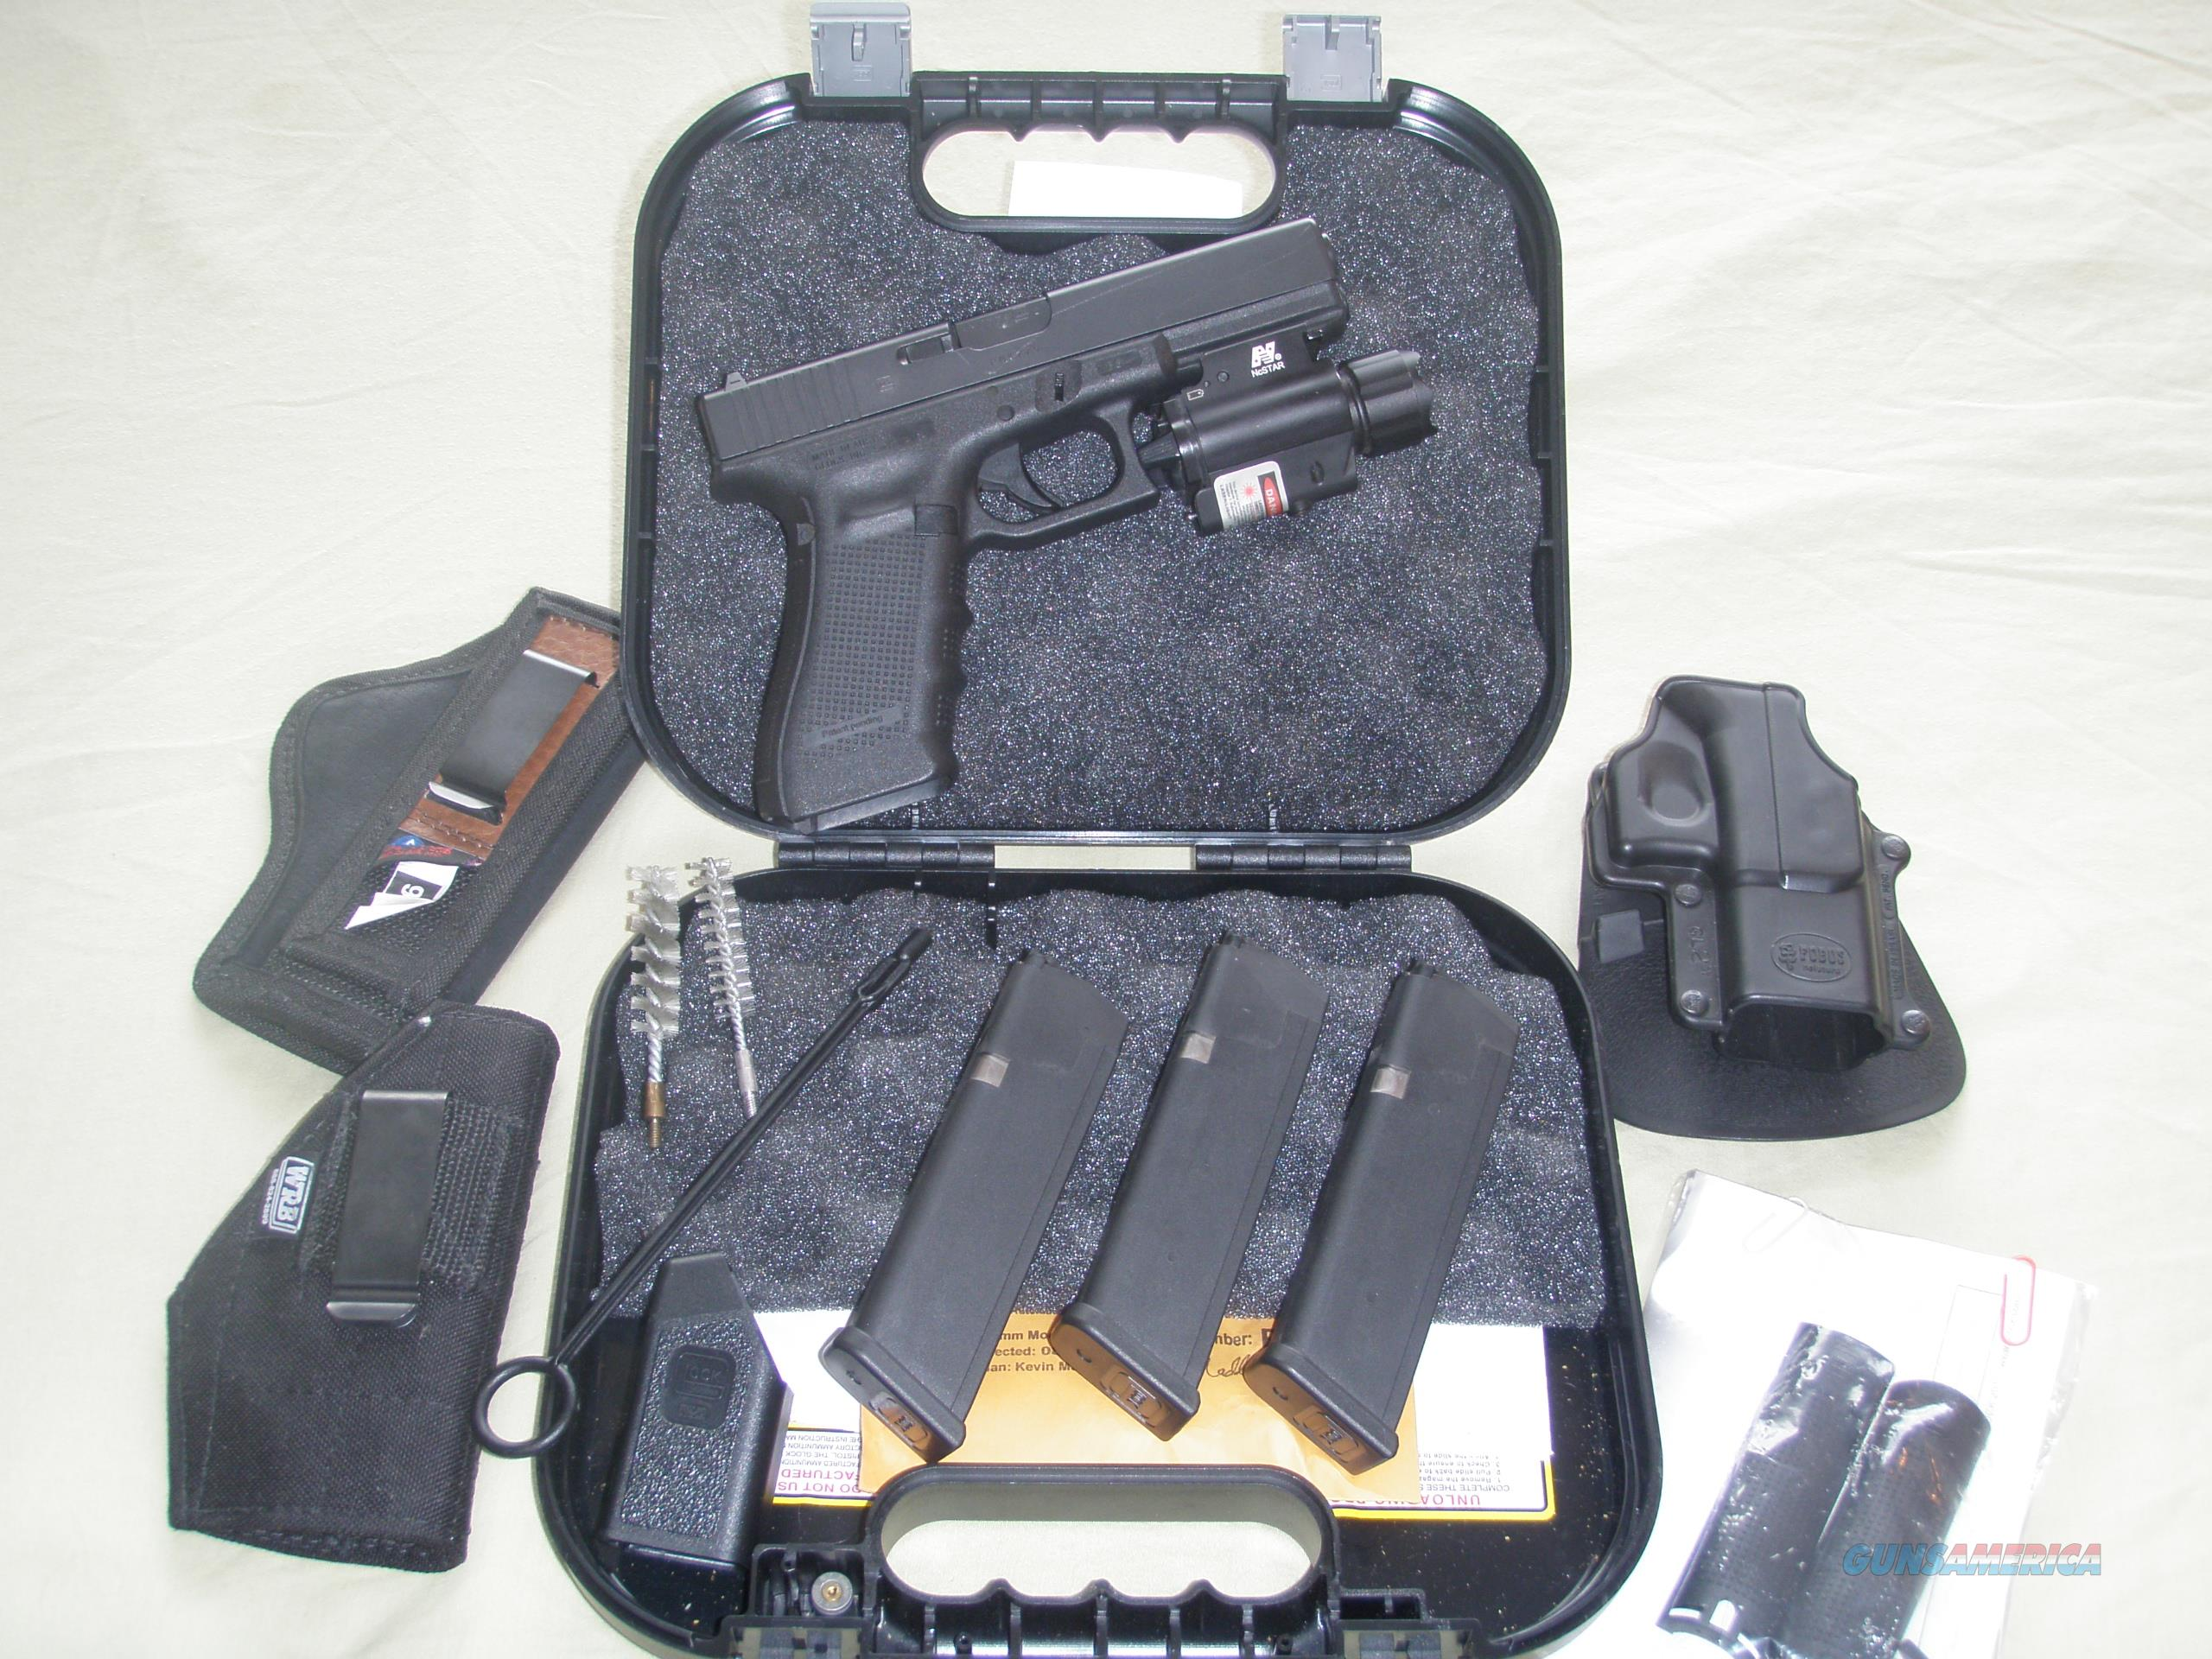 Glock 17 Gen 4 9mm NcSTAR Laser & Flashlight Combo 3 Holsters FOBUS  Guns > Pistols > Glock Pistols > 17